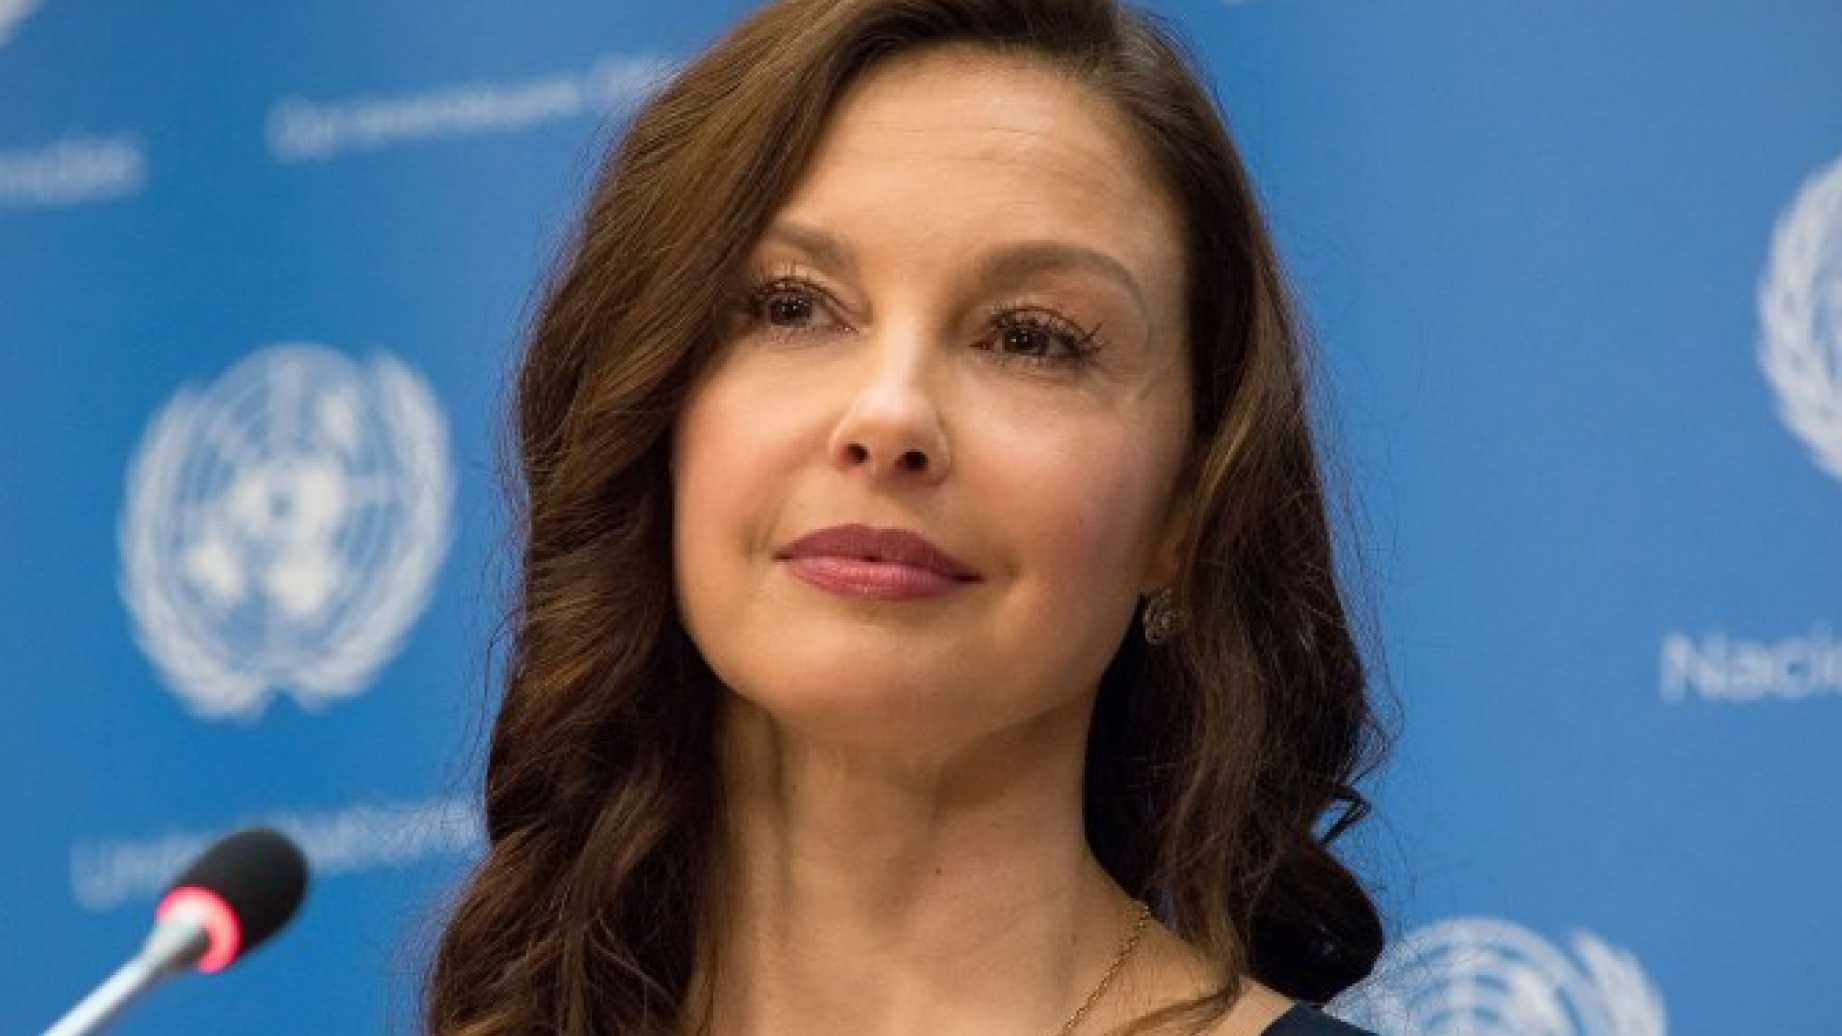 Actriz Ashley Judd presenta demanda contra exproductor Weinstein